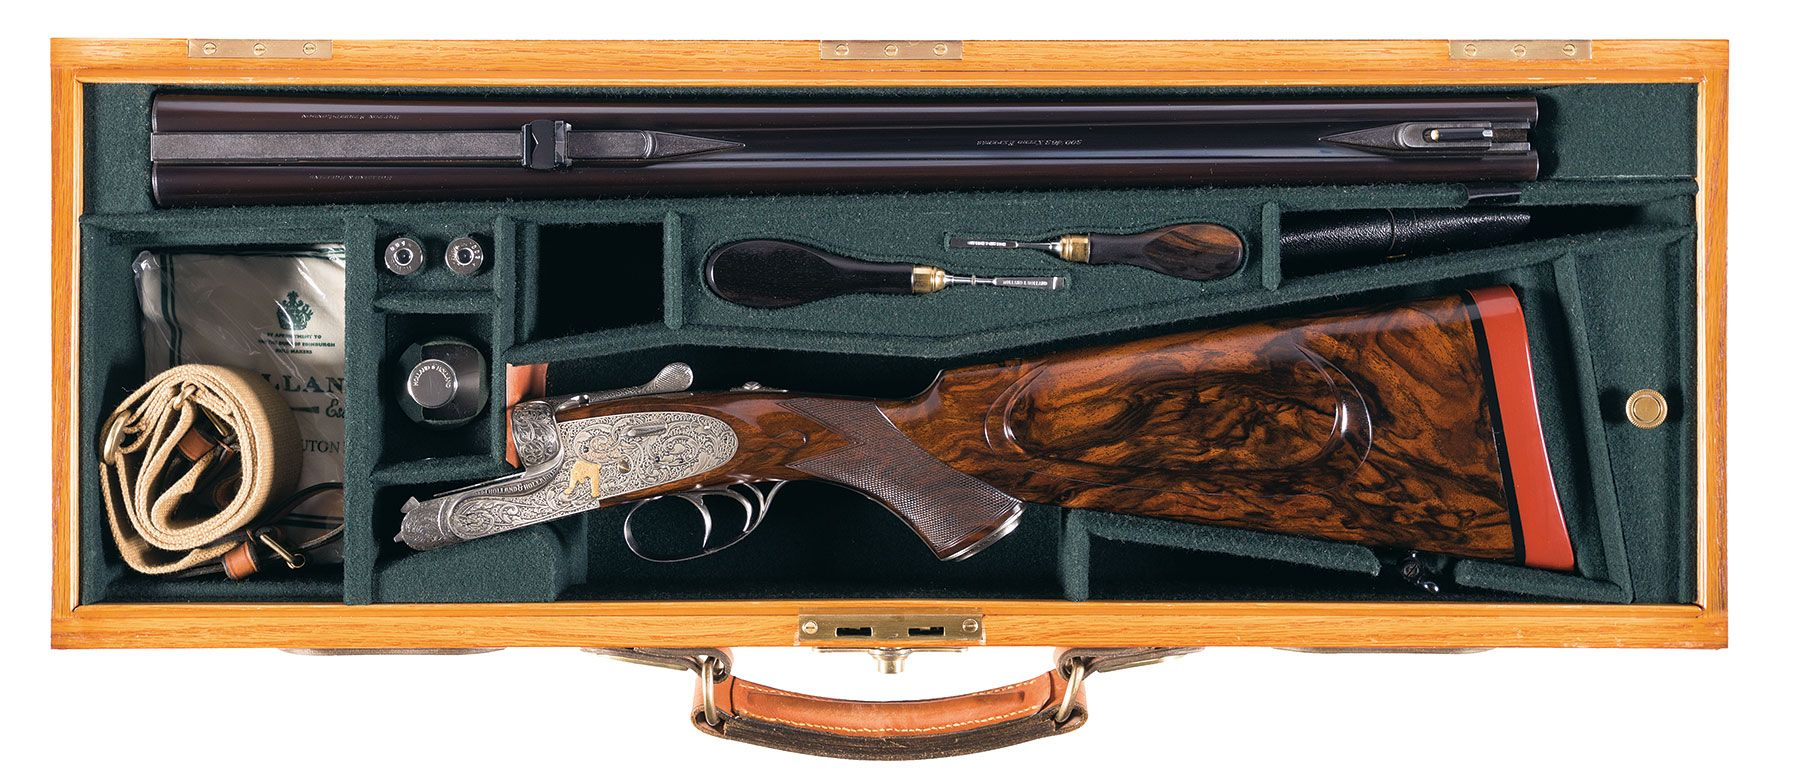 Holland & Holland 500/465 Nitro Express Double Rifle cased